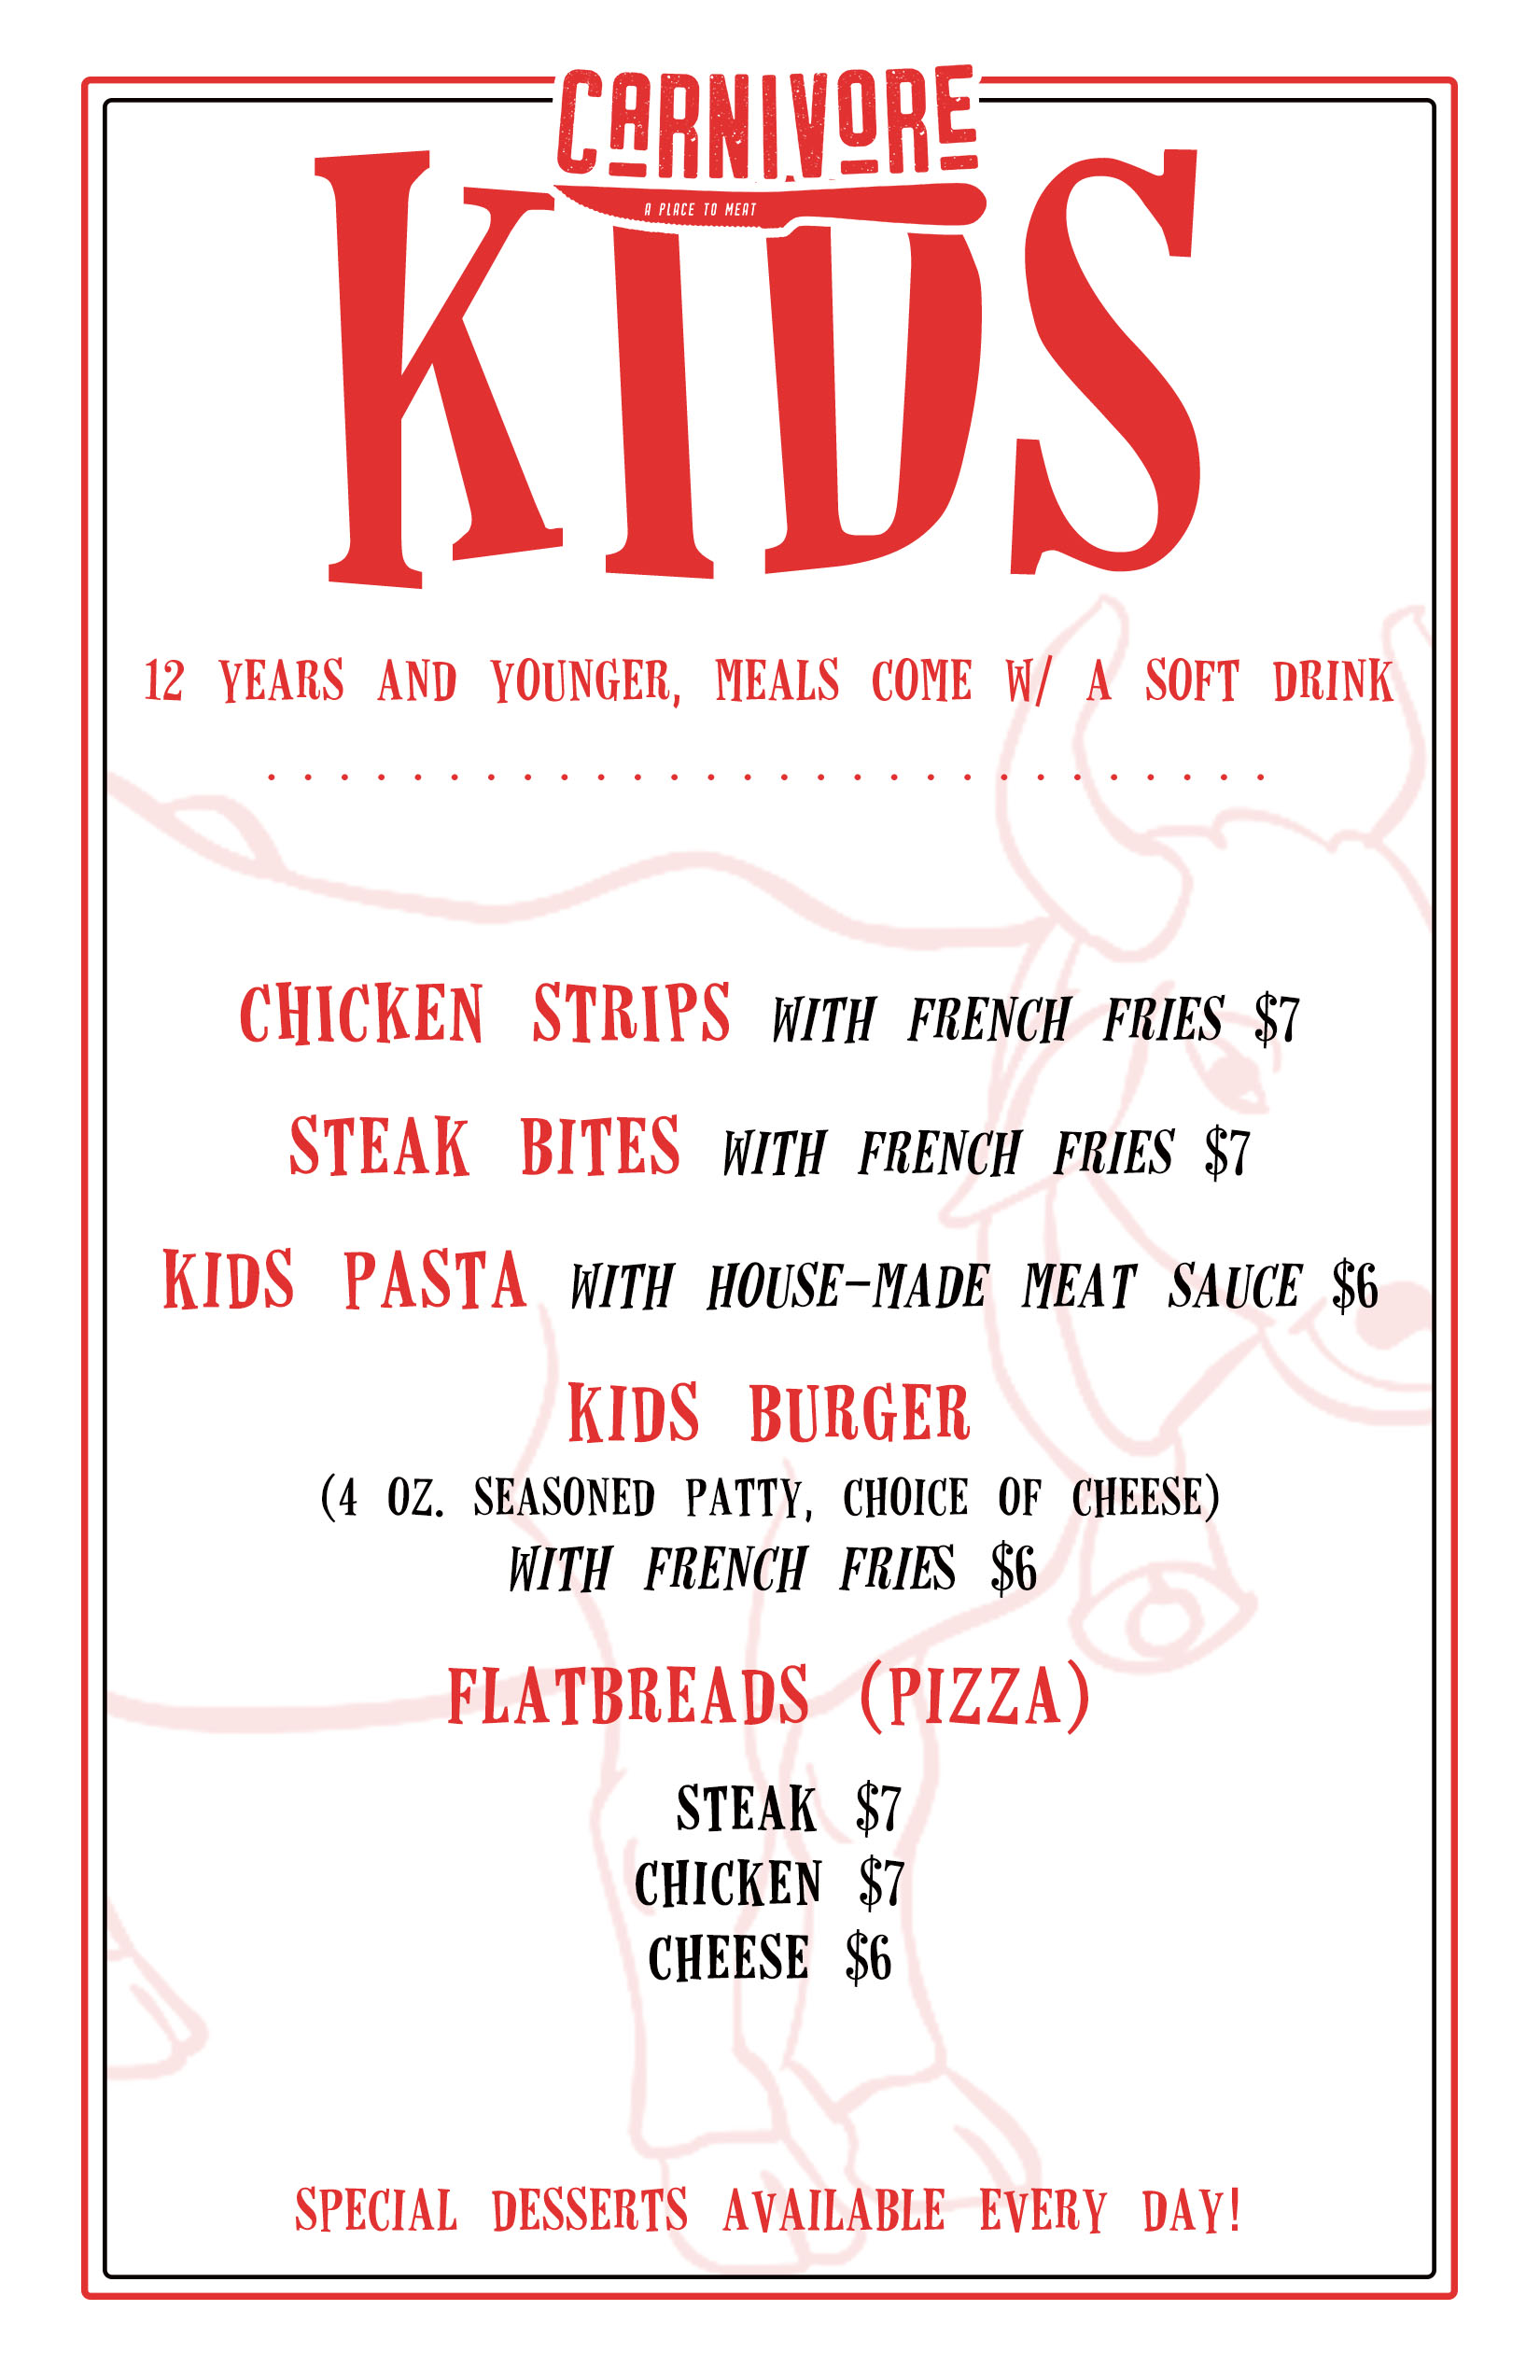 New Kid's Menu! - Bring the whole family in and let us take care of everything!